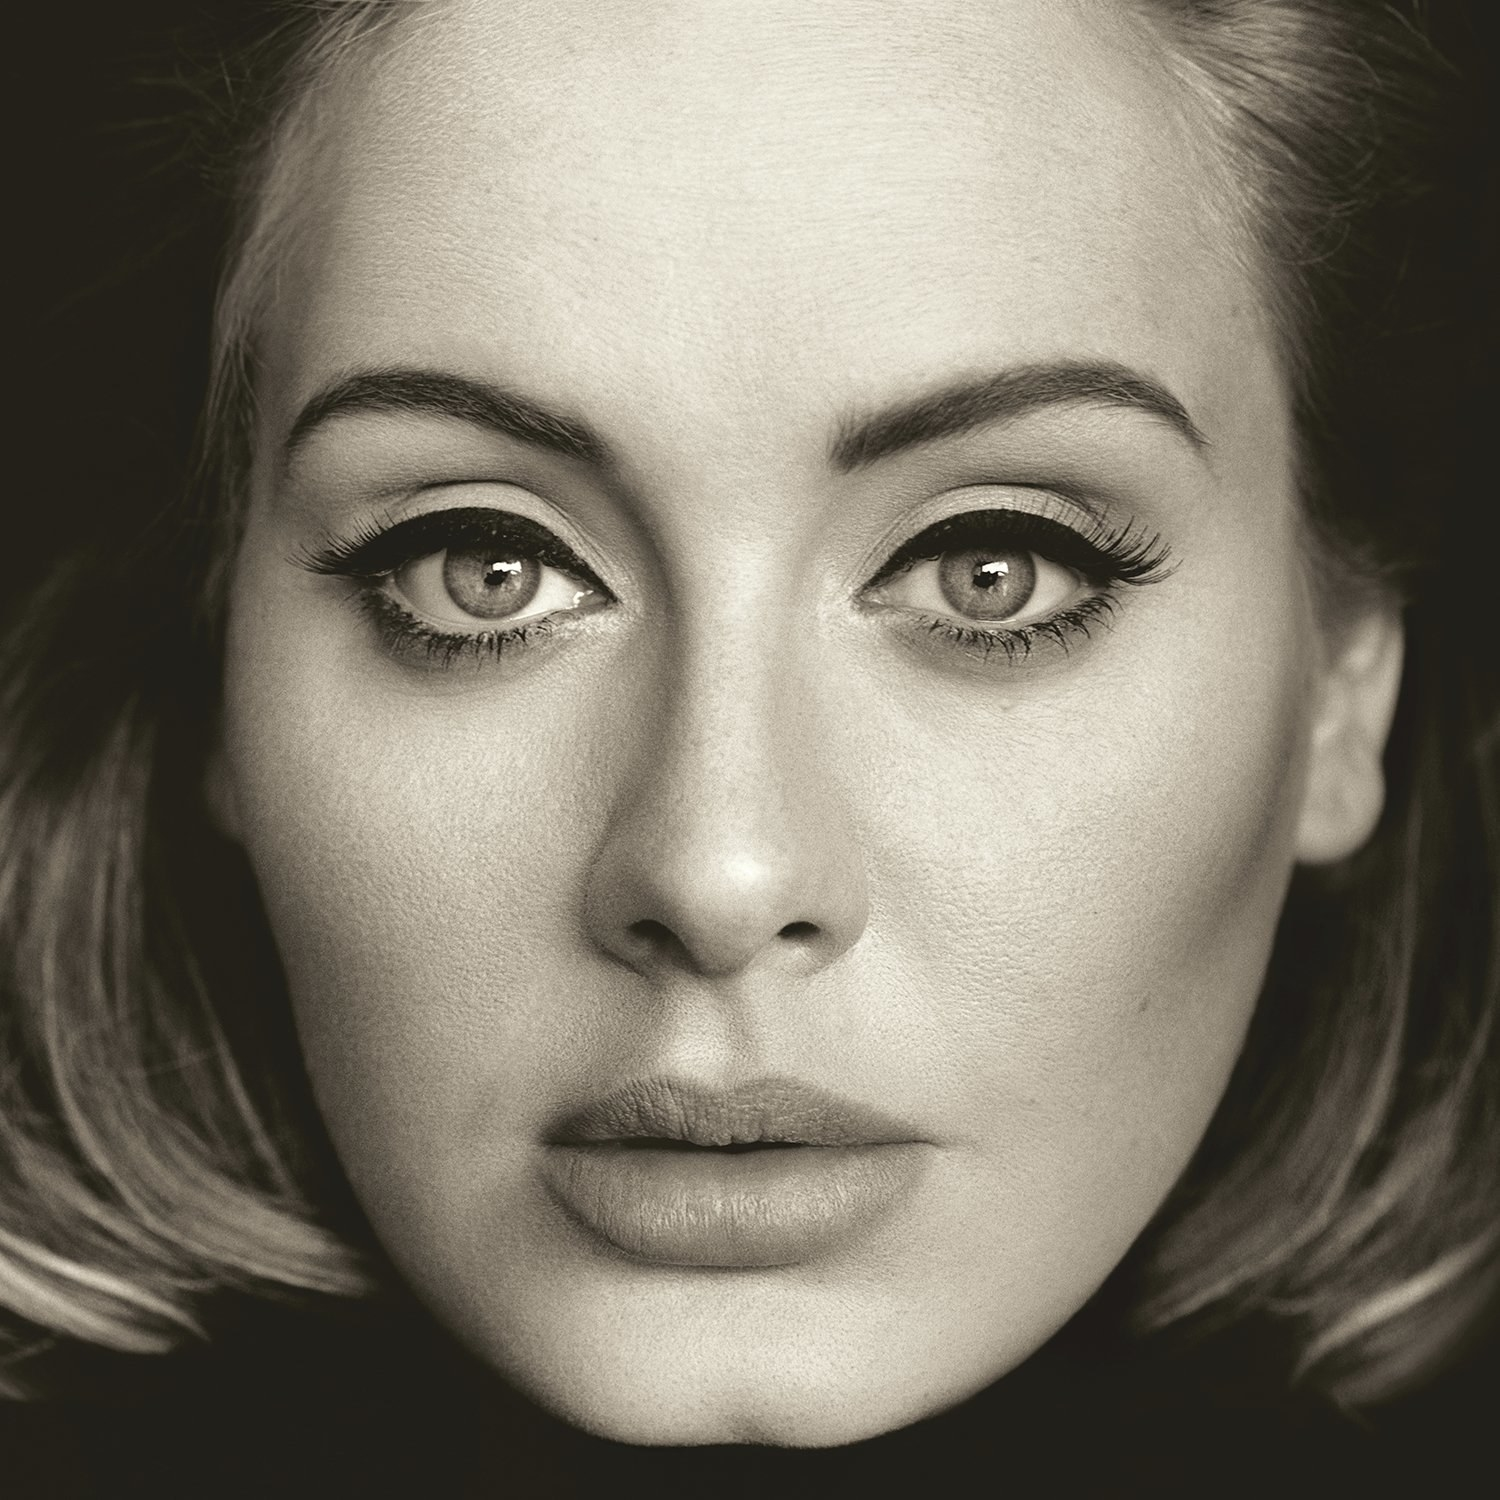 album cover of 25 showing Adele's face